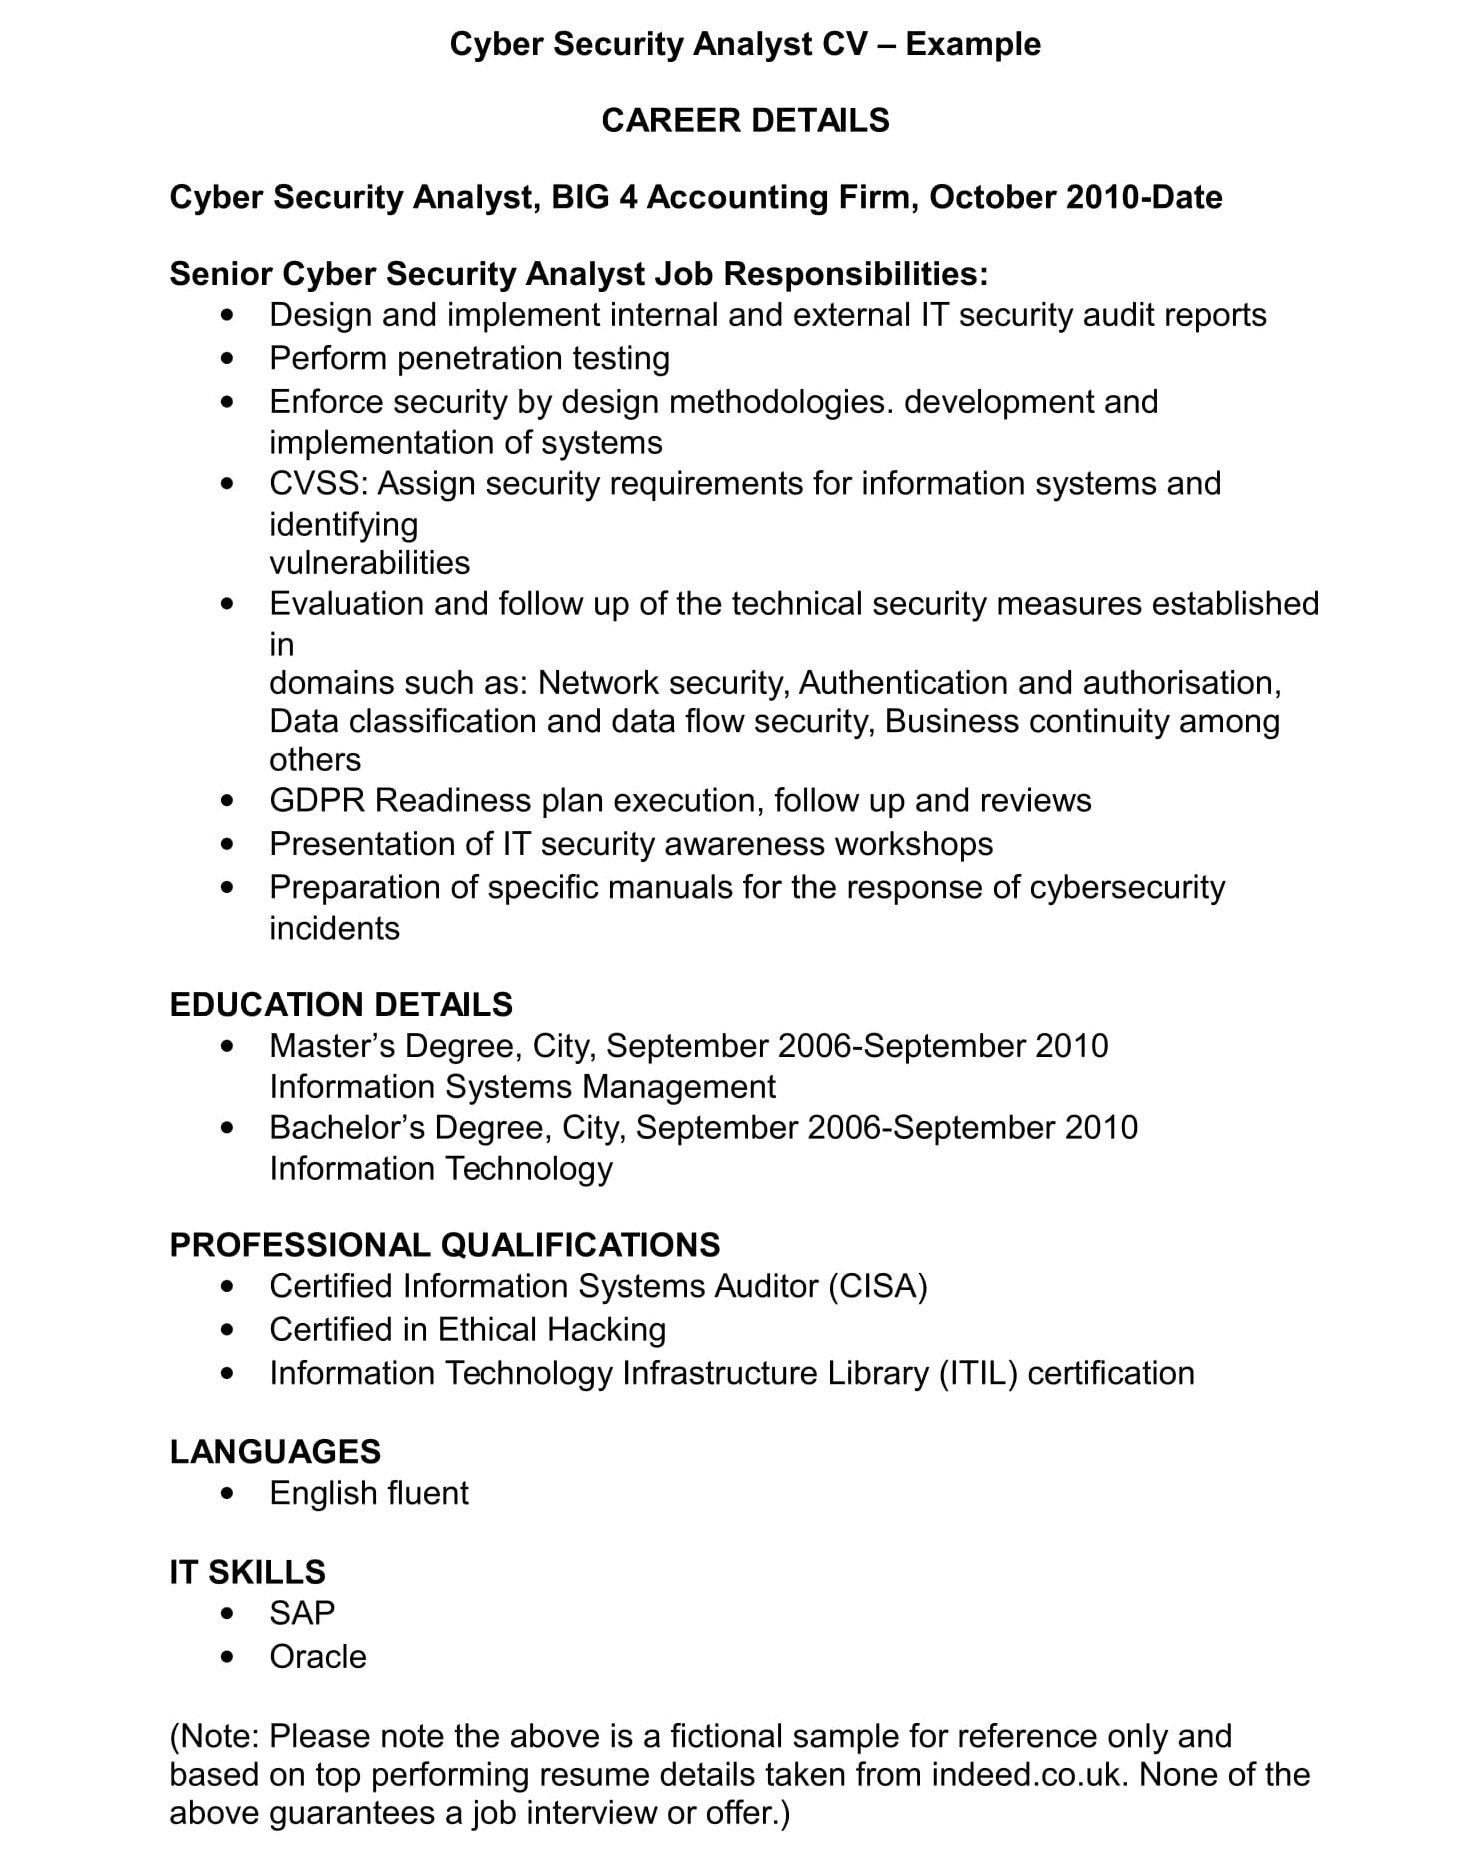 cyber security cv template and examples renaix resume sample analyst example scaffold Resume Cyber Security Resume Sample